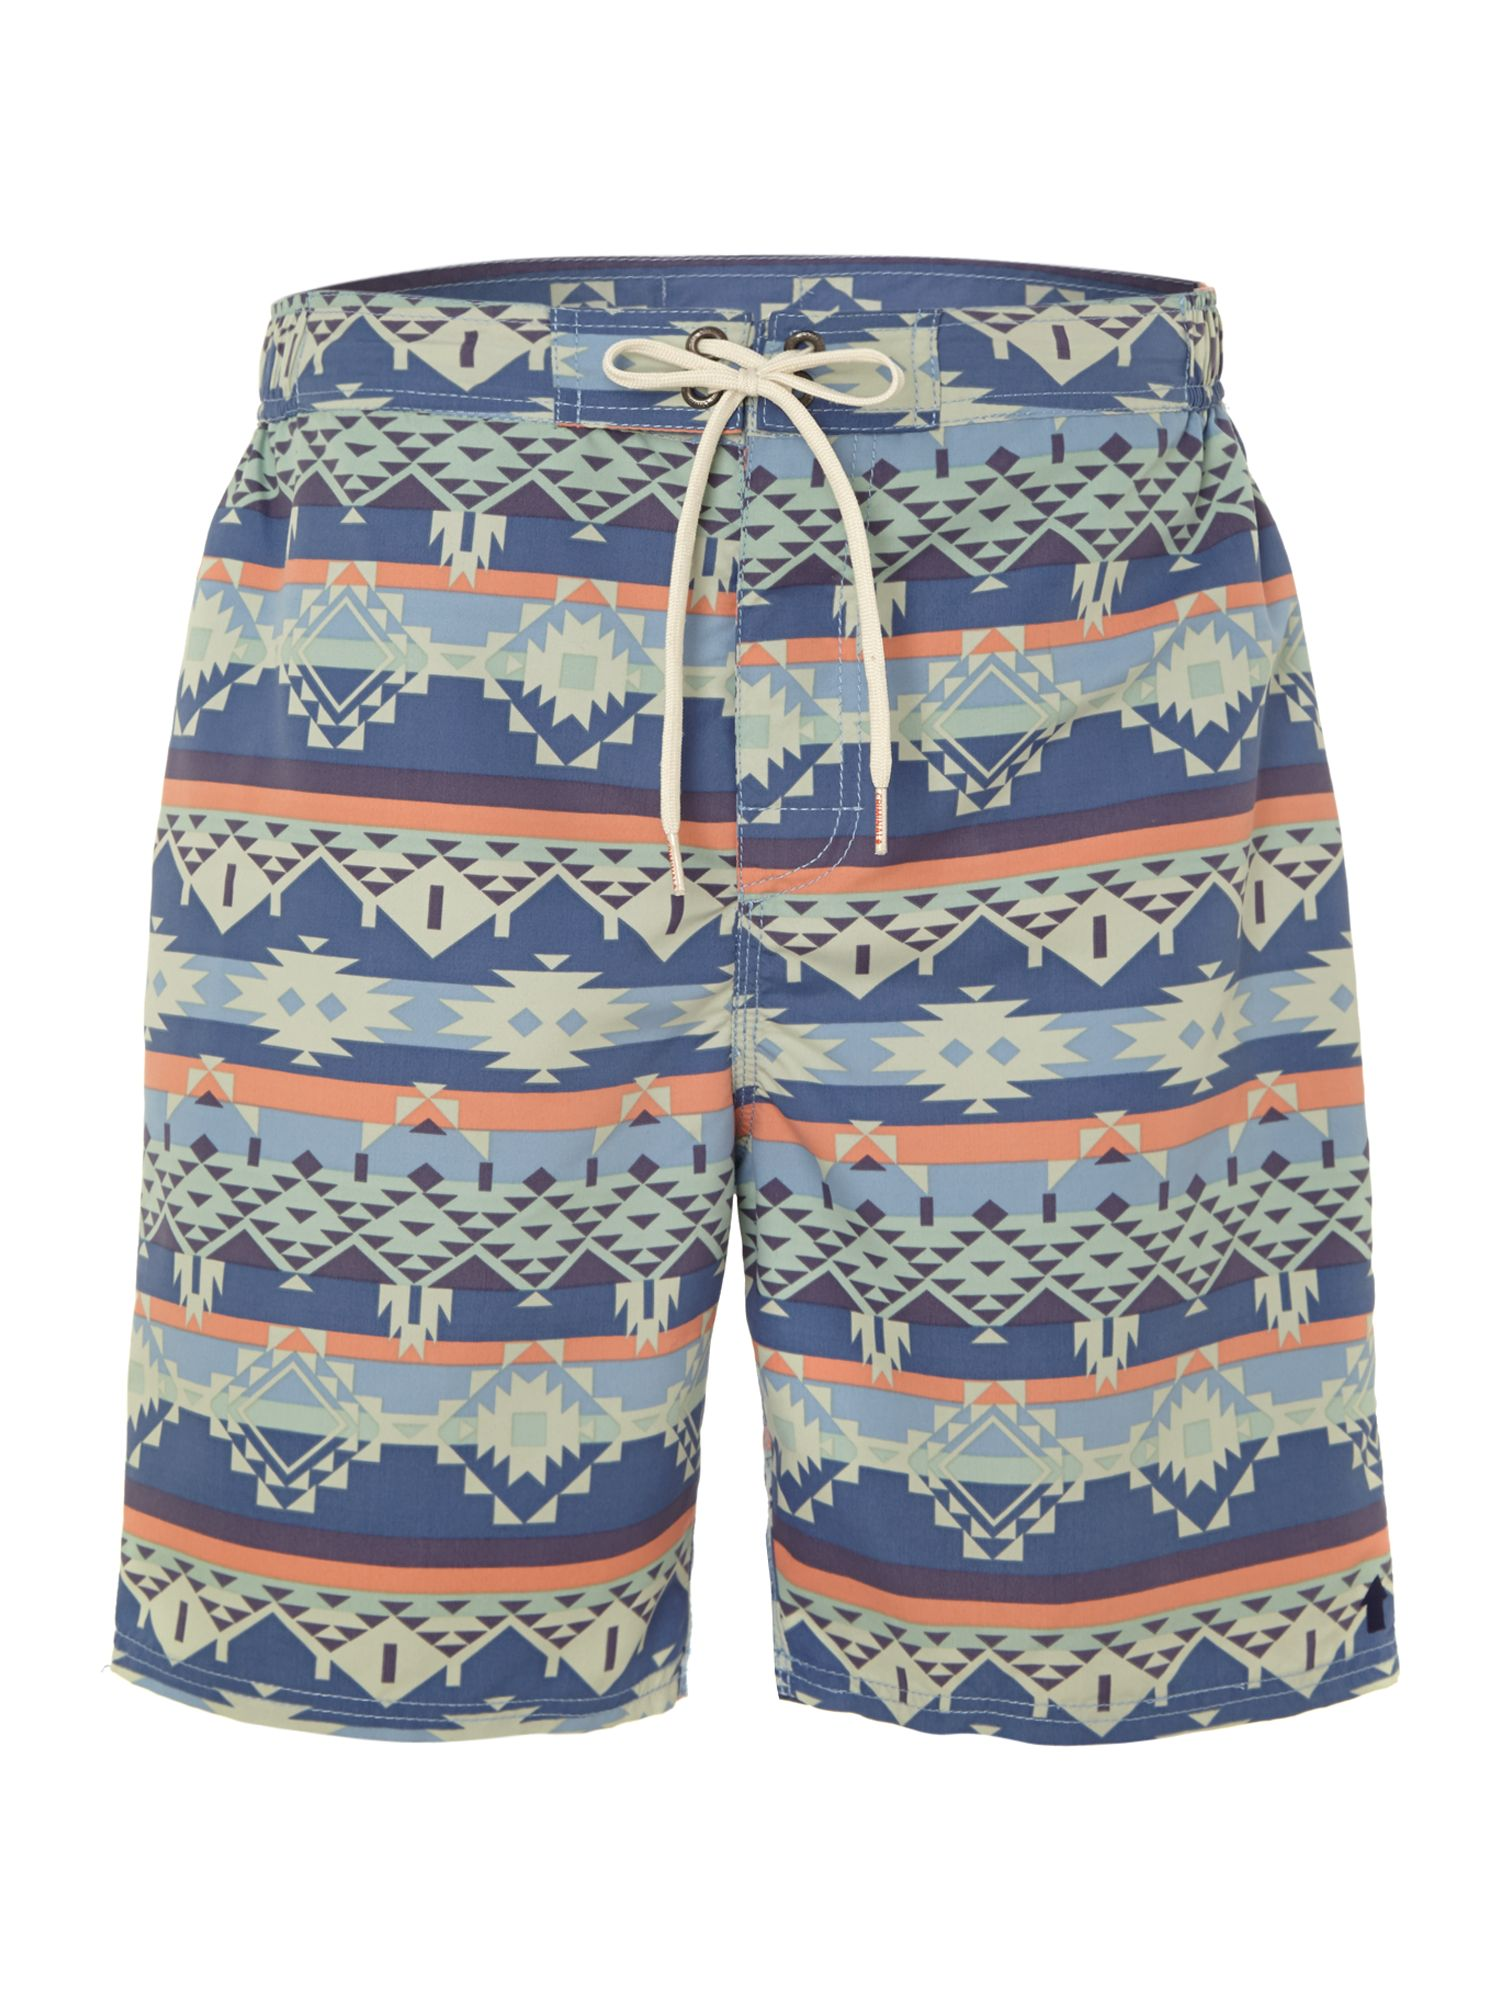 Aztec swim short